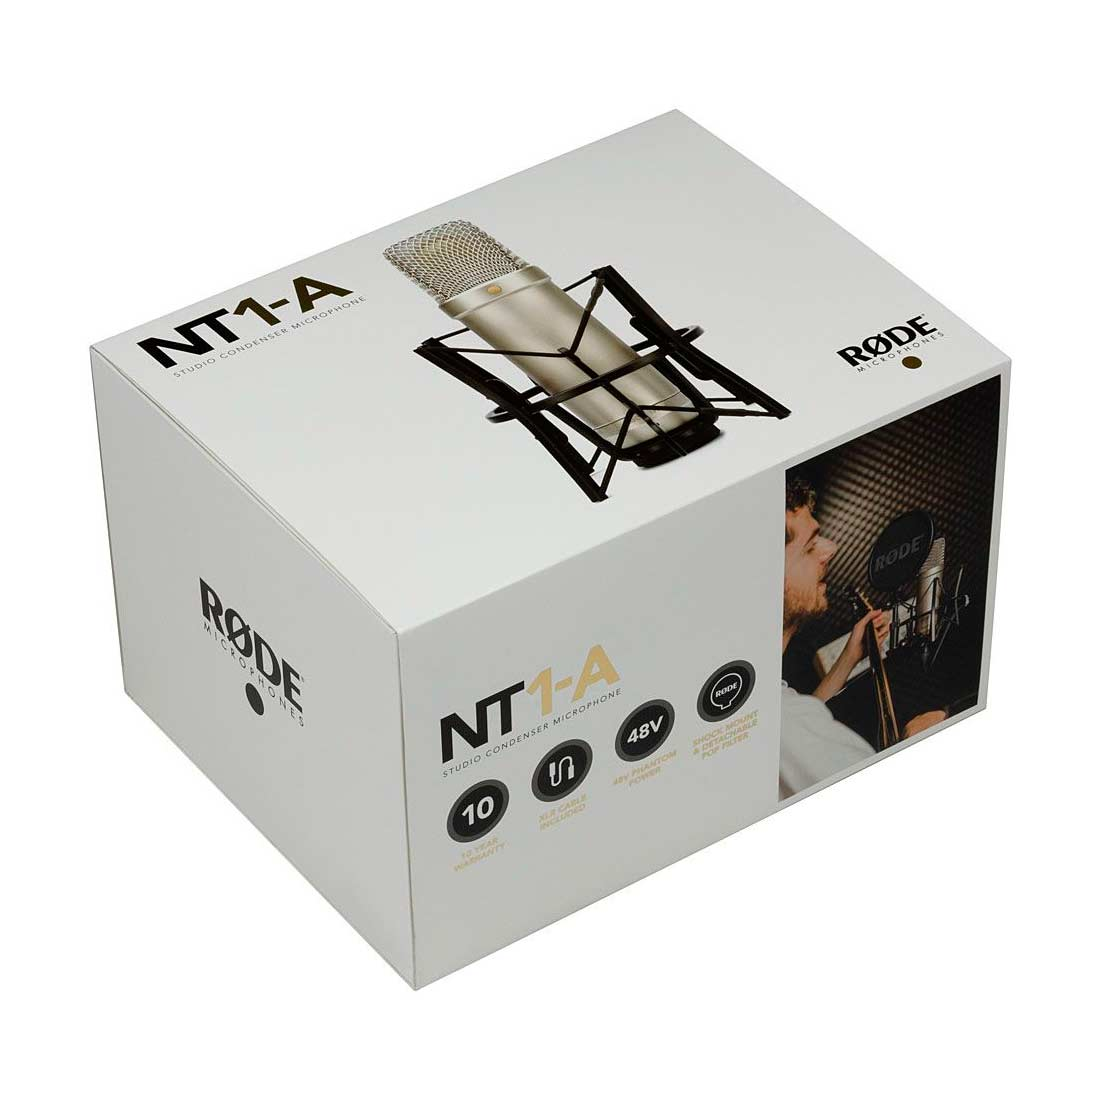 Rode NT1-A Complete Vocal Recording - Set micrófono estudio